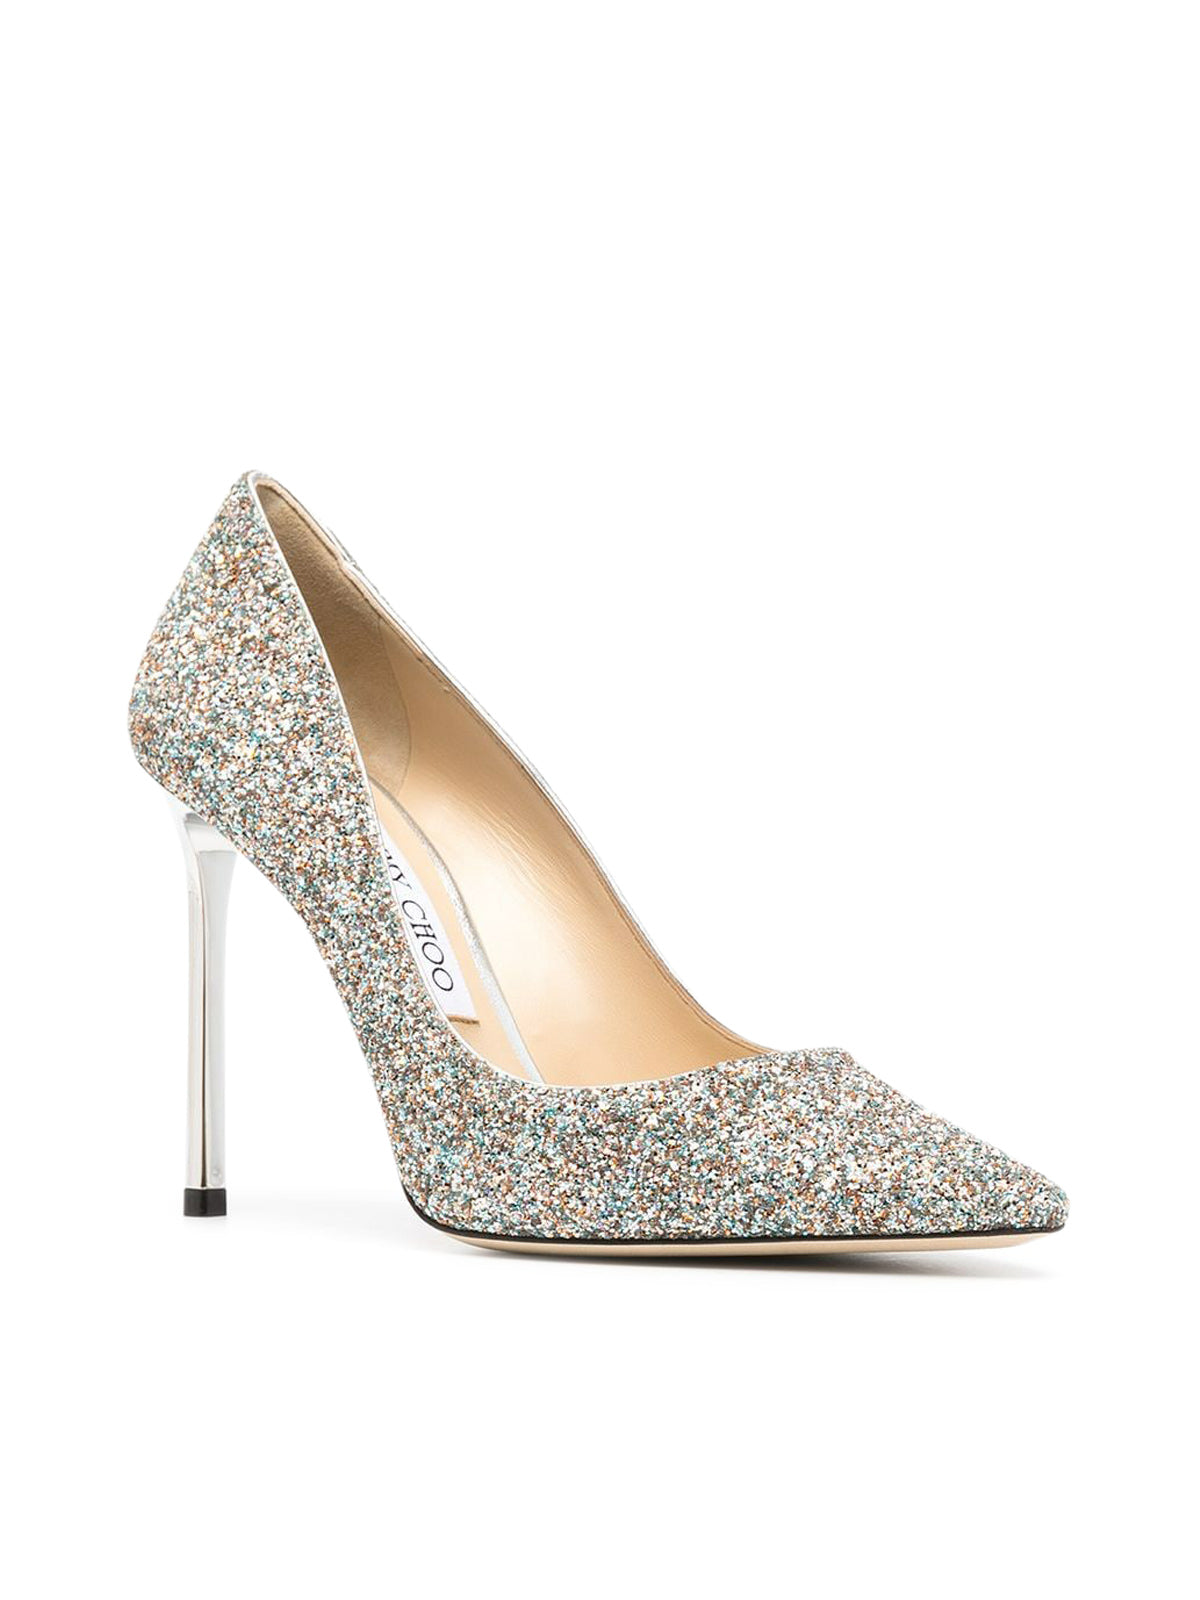 Romy pumps with glitter